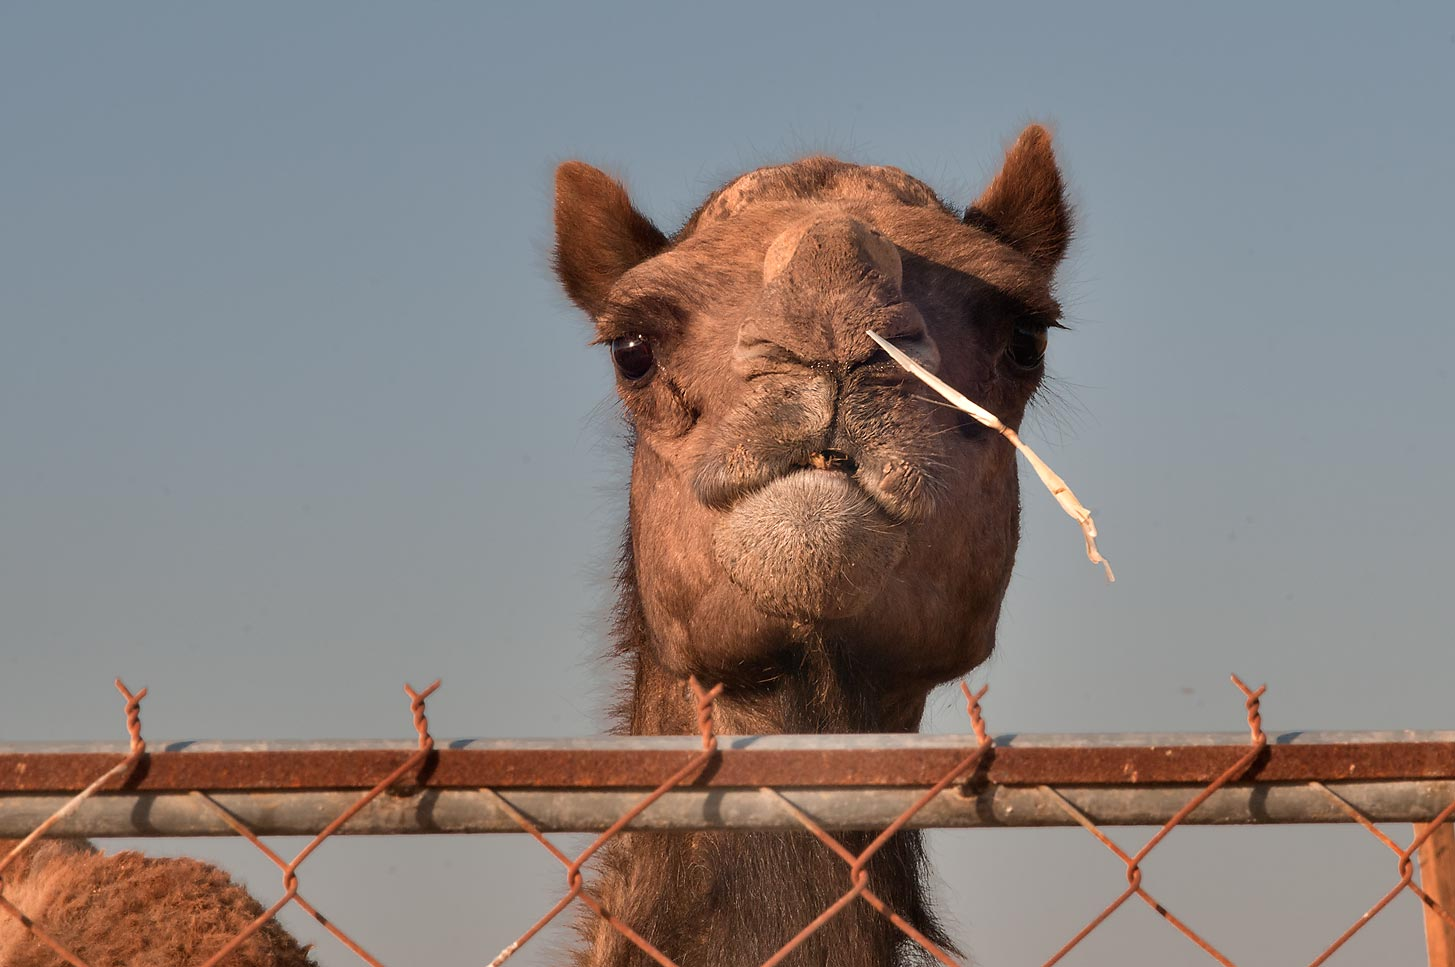 Camel with a grass stalk in Camel Market (Souq), Wholesale Markets area. Doha, Qatar